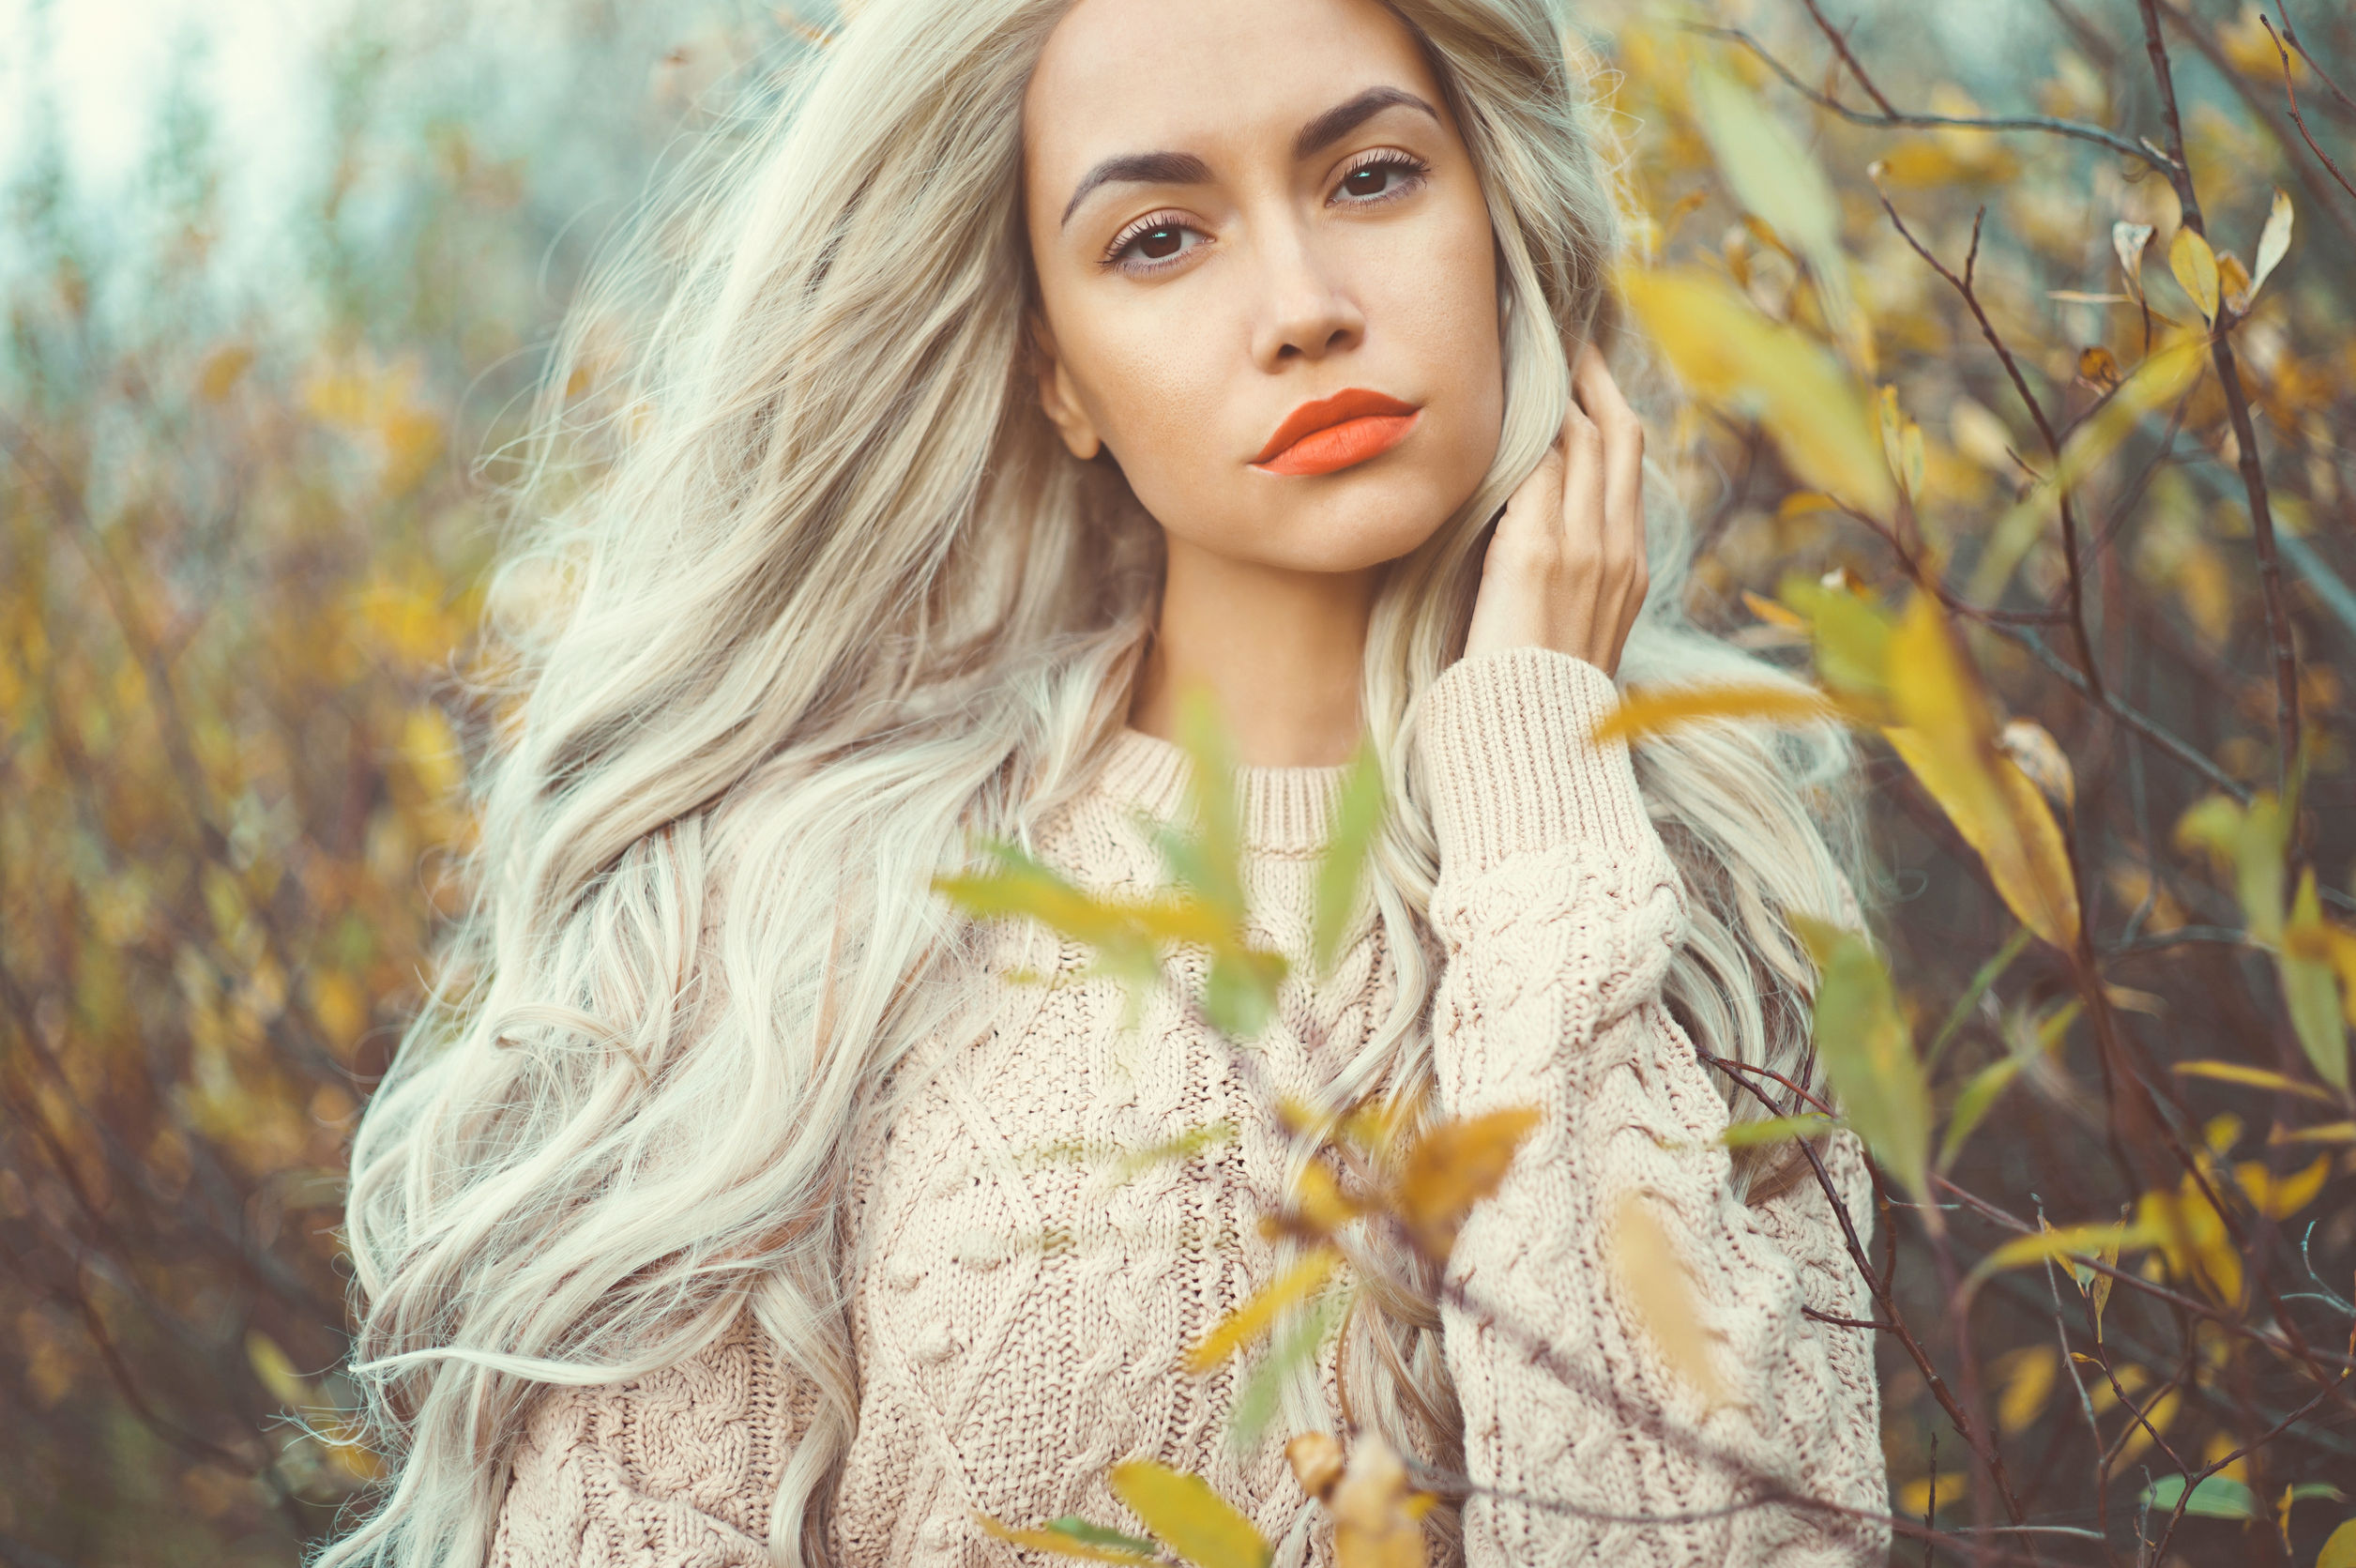 54293964 - outdoor fashion photo of young beautiful lady surrounded autumn leaves